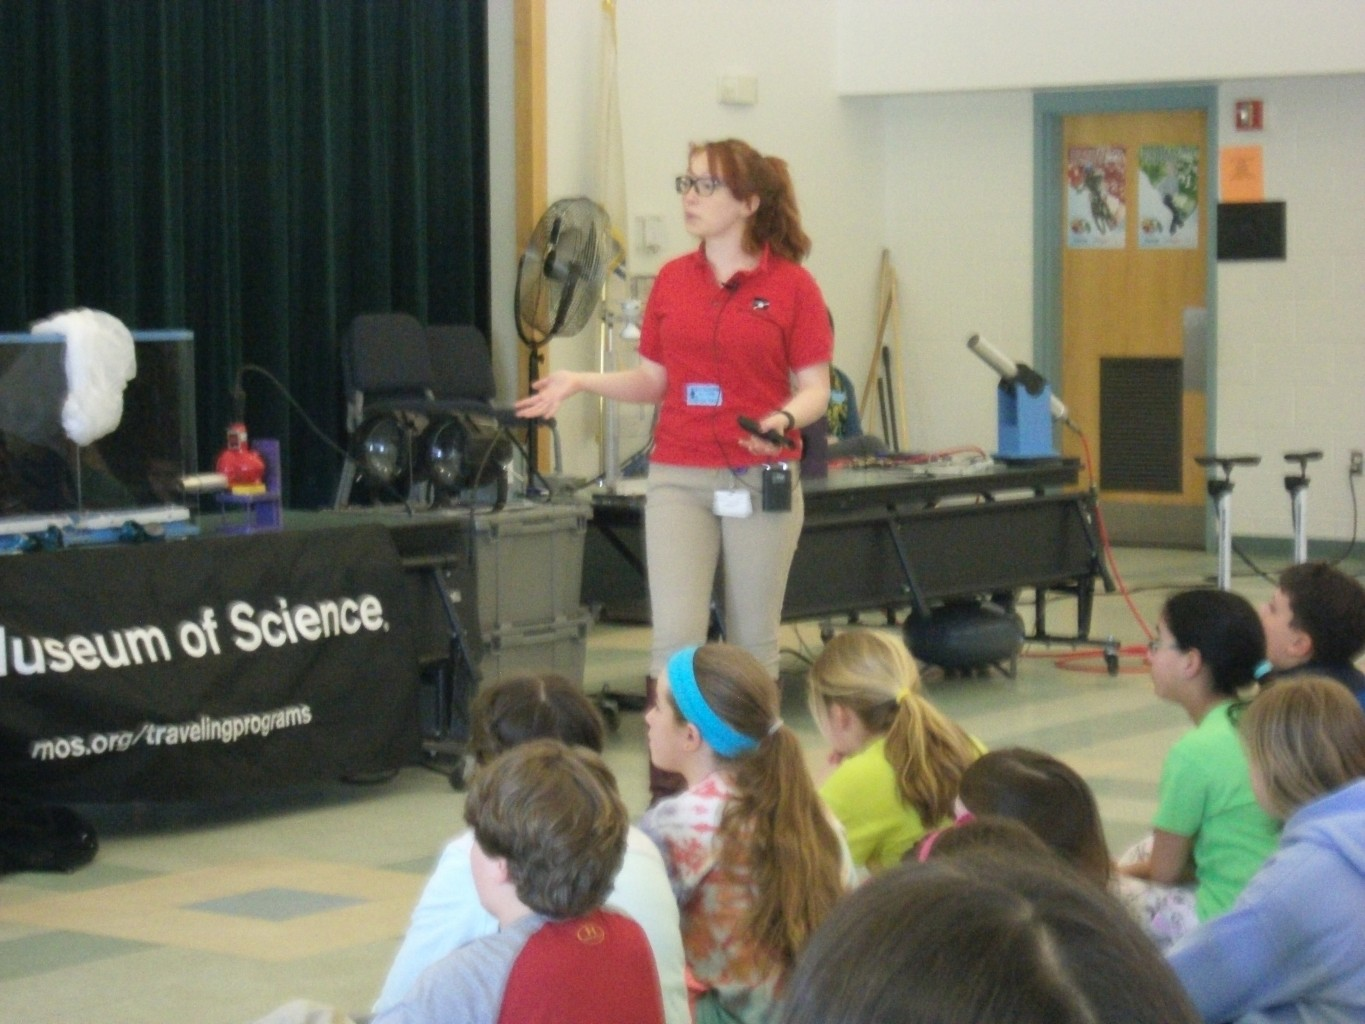 Introduction by Boston Museum of Science presenter.